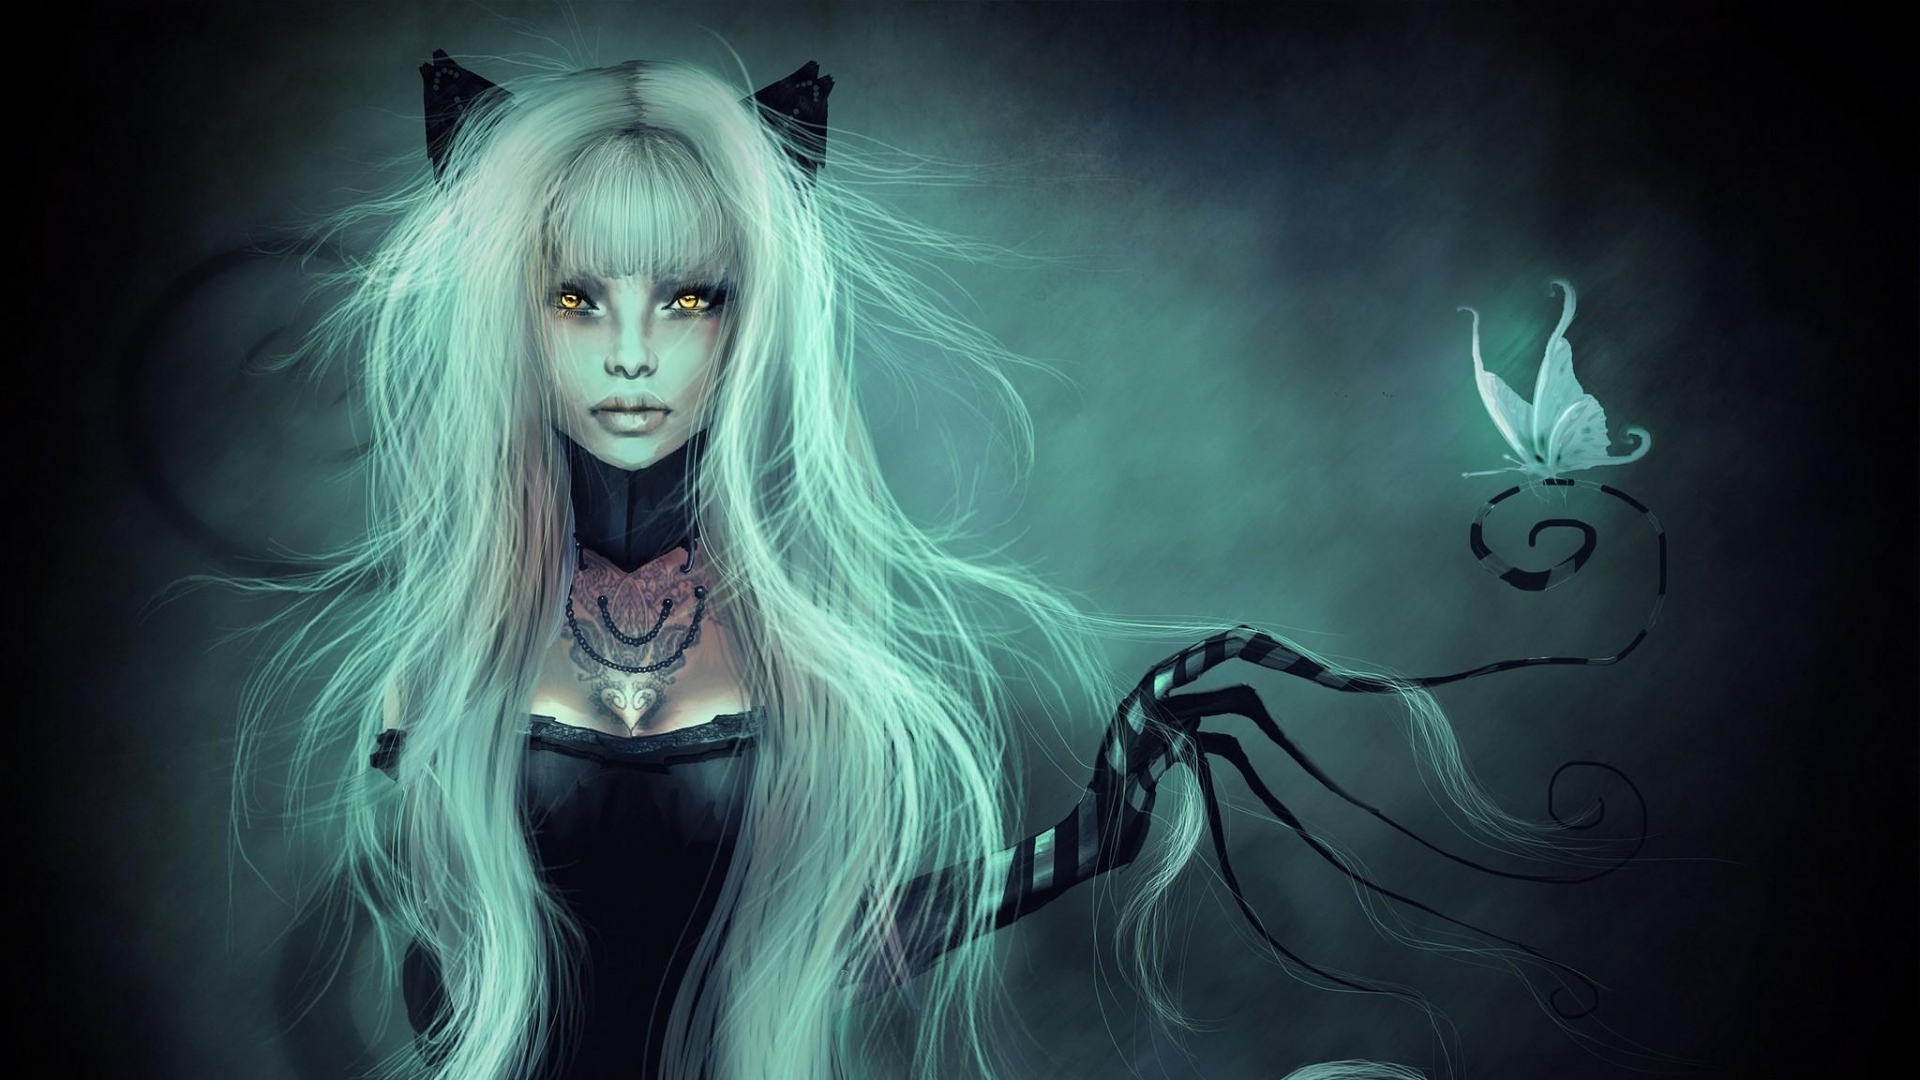 girl-hair-hand-butterfly-eyes-cat-1920x1080